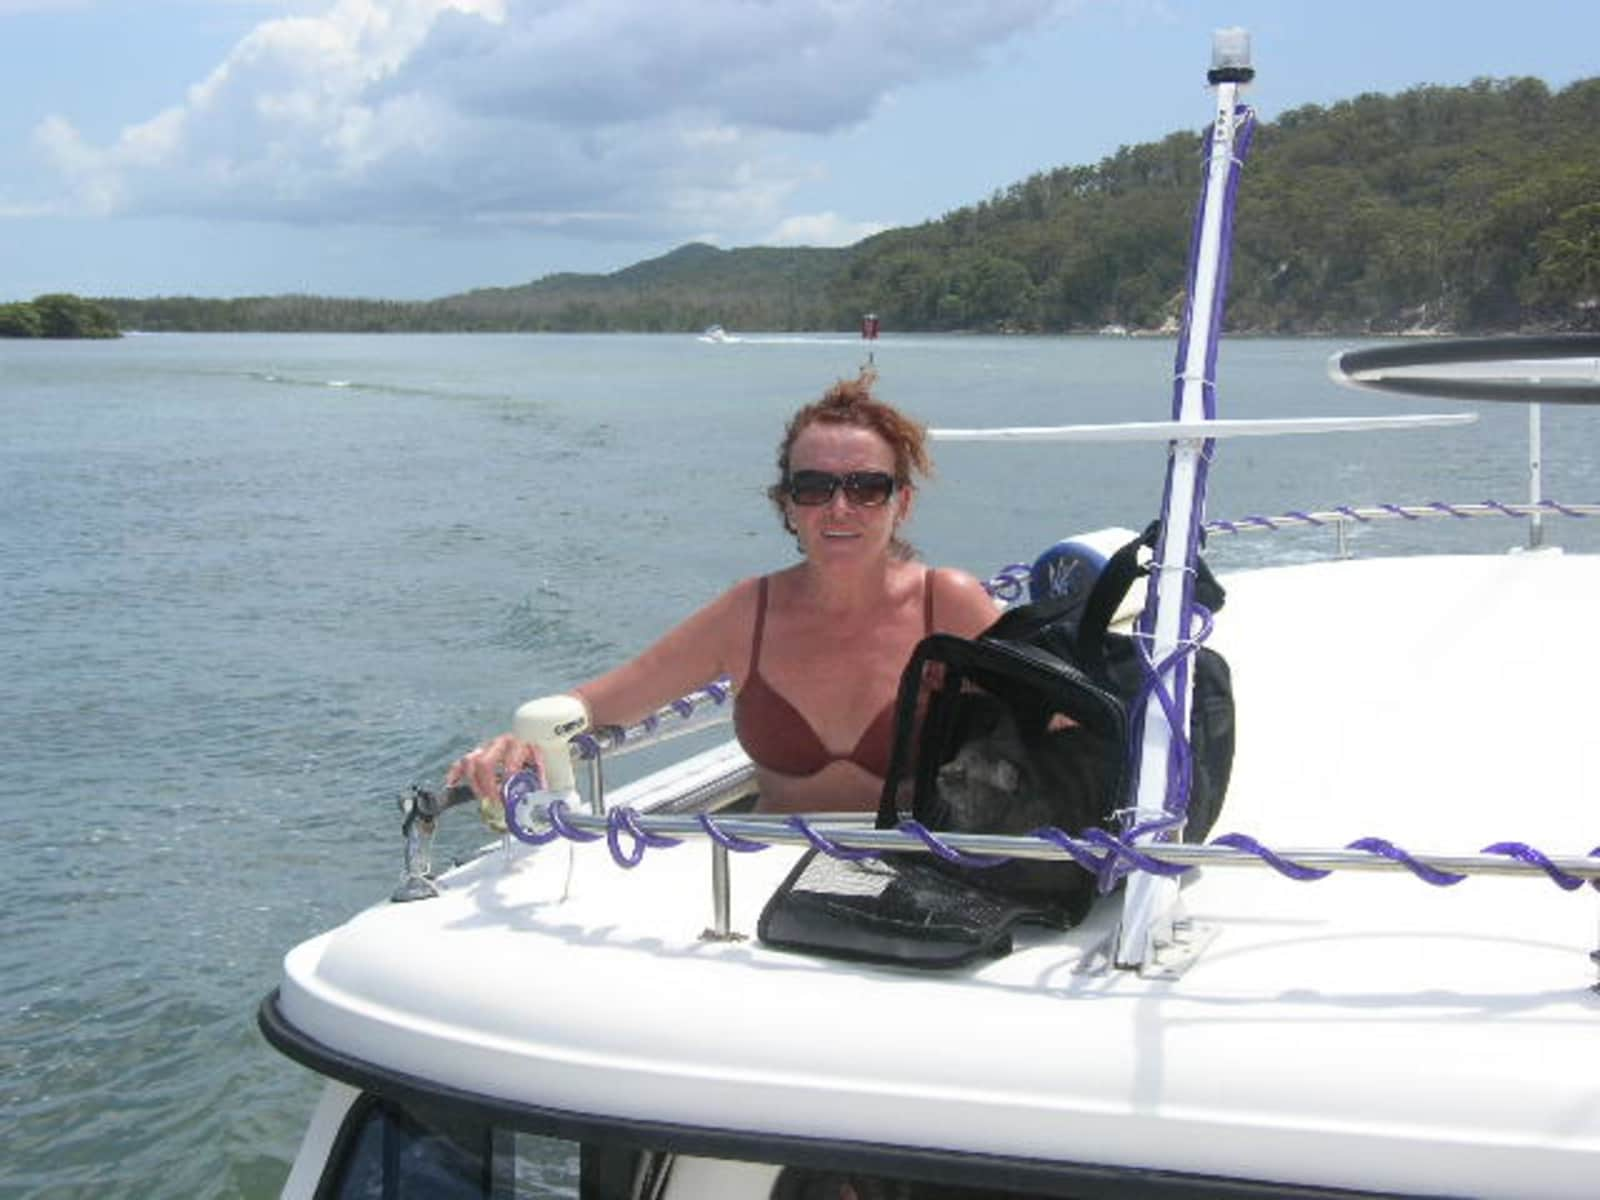 Lesley from Labrador, Queensland, Australia